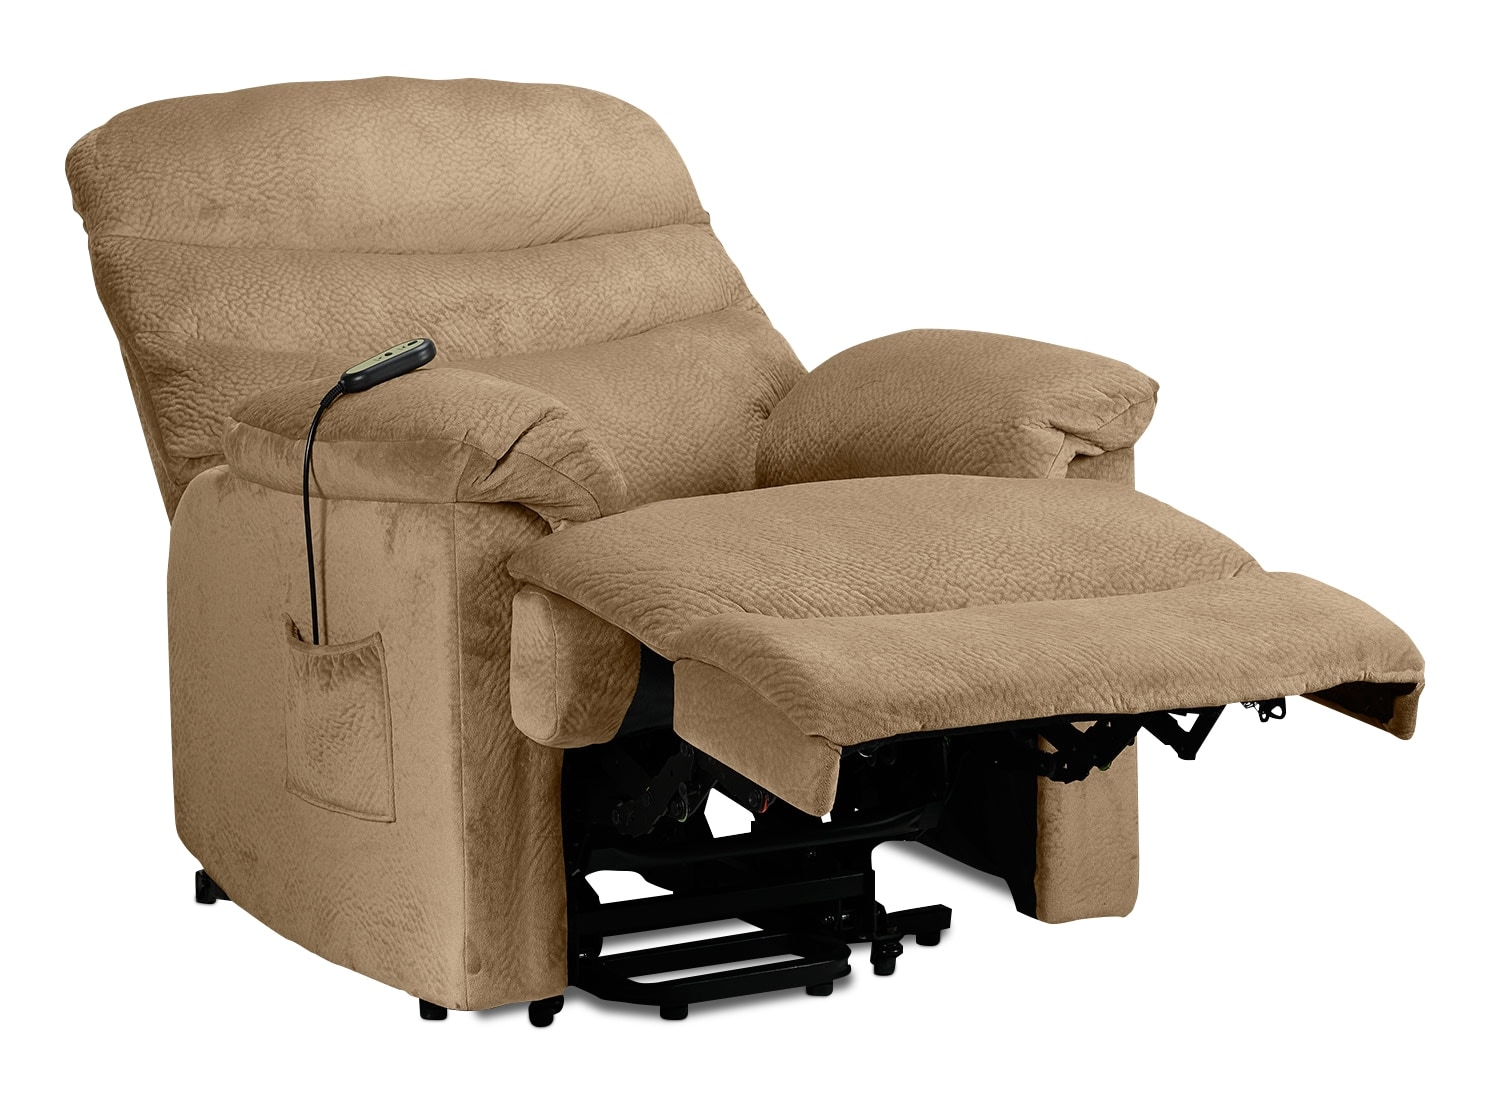 Power lift recliner chairs reviews chairs model for Electric recliners reviews